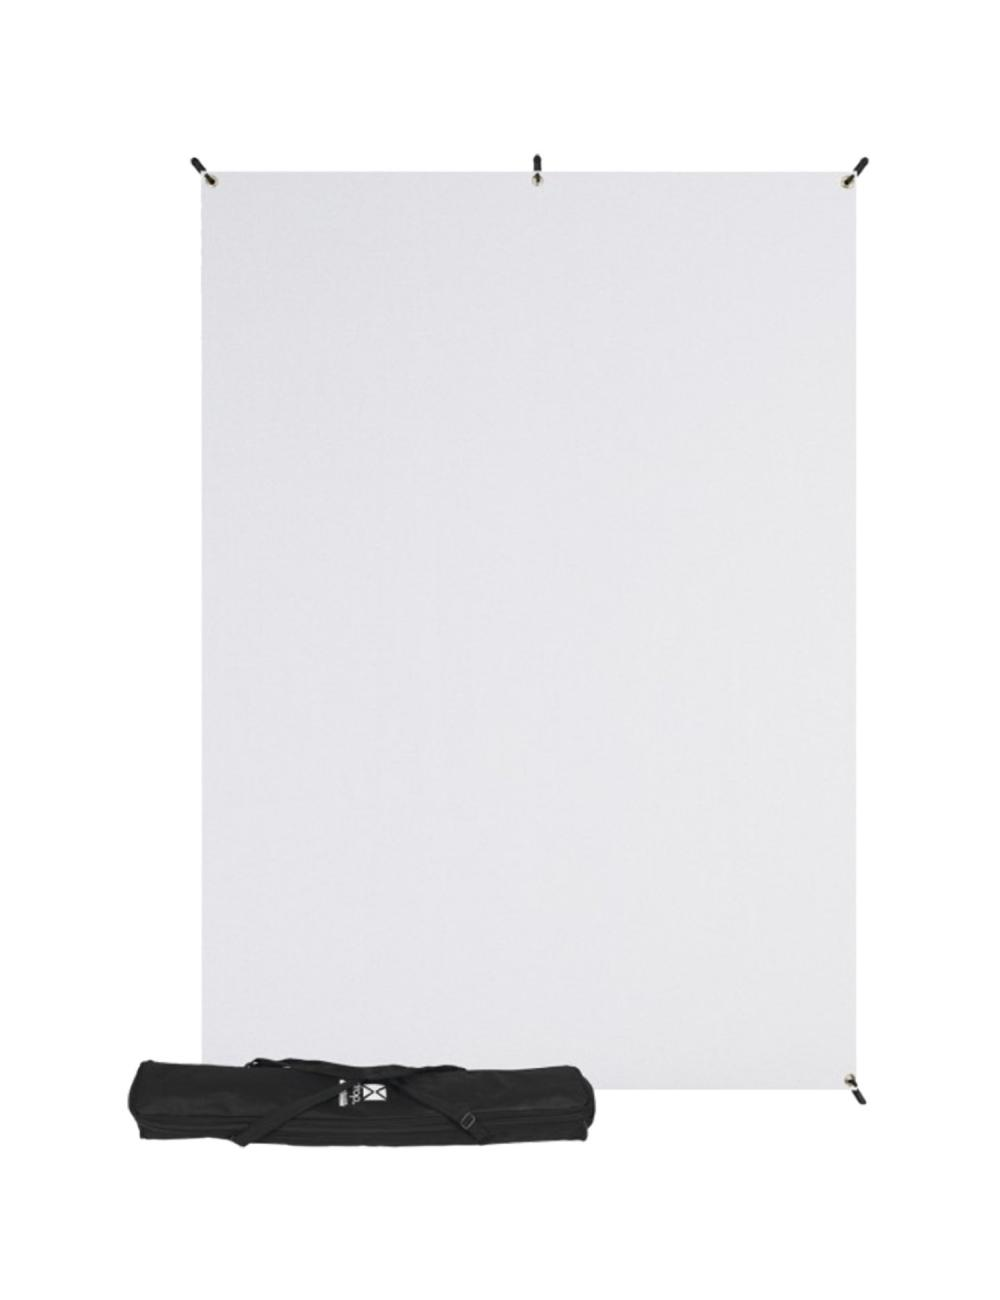 Westcott X-Drop Wrinkle-Resistant Backdrop - Kit 5 x 7